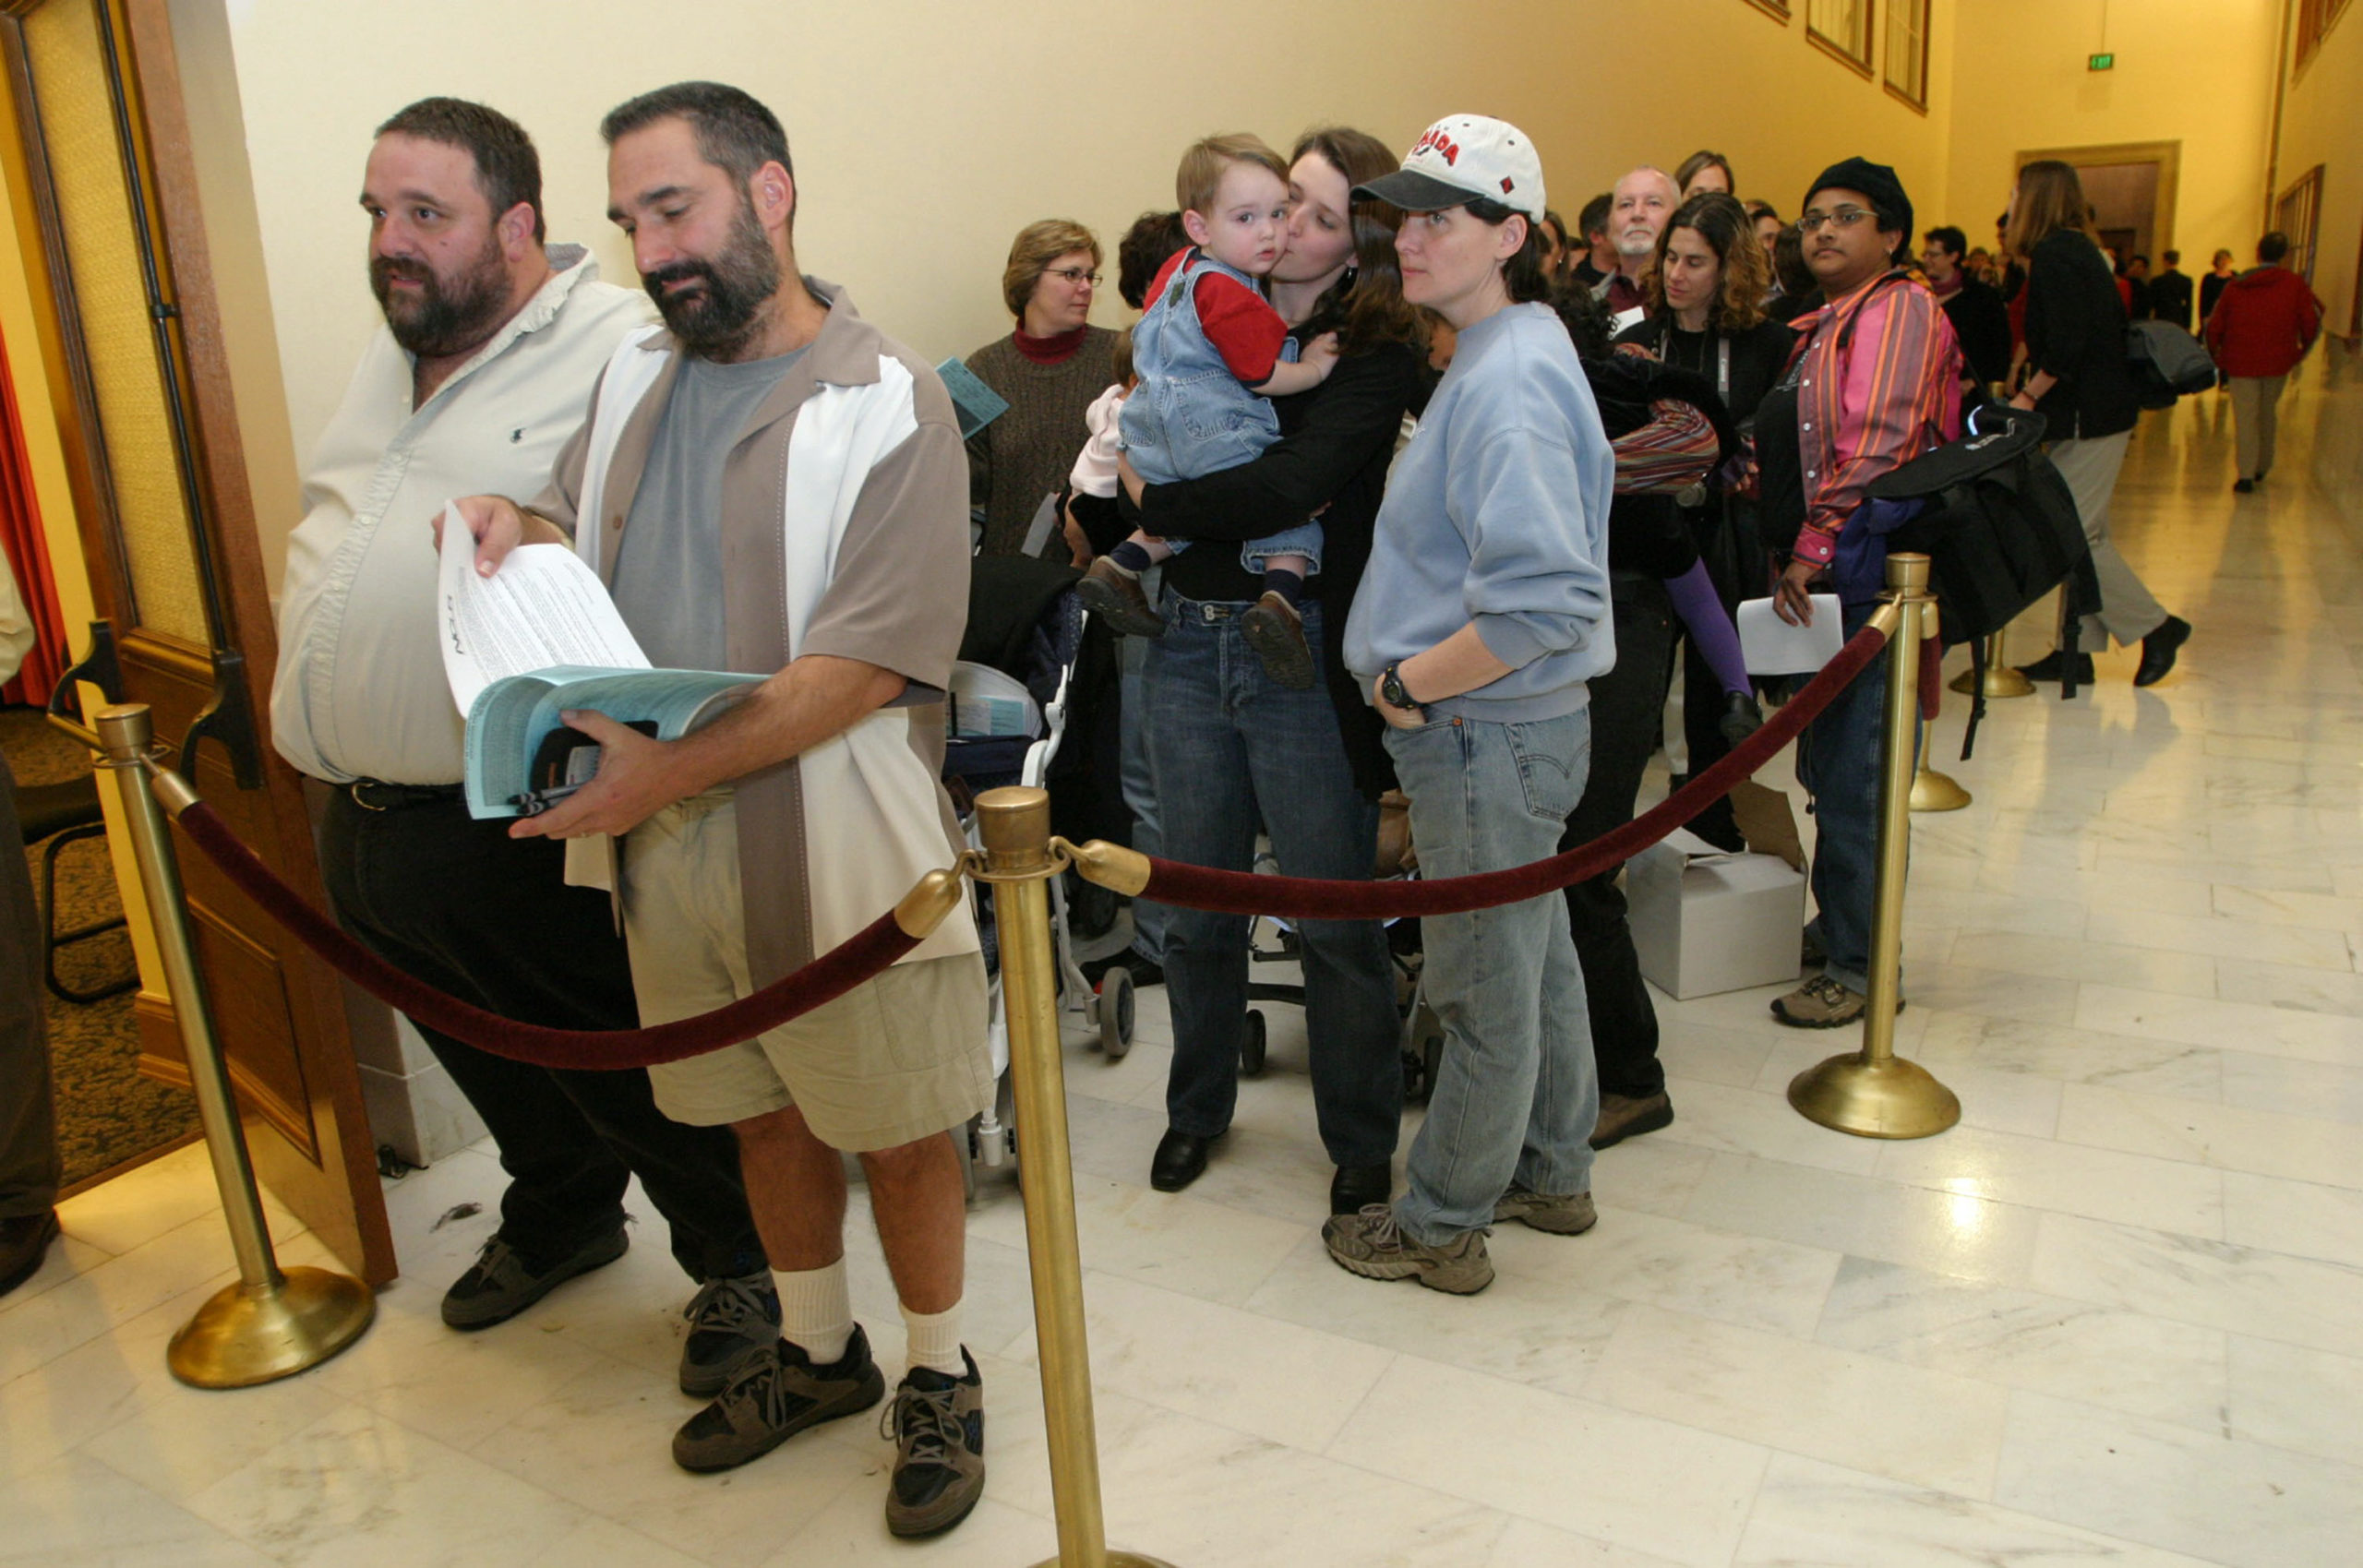 Hundreds of gay couples line up in front of the County Clerk's office at San Francisco City Hall to register for marriage forms on February 13, 2004